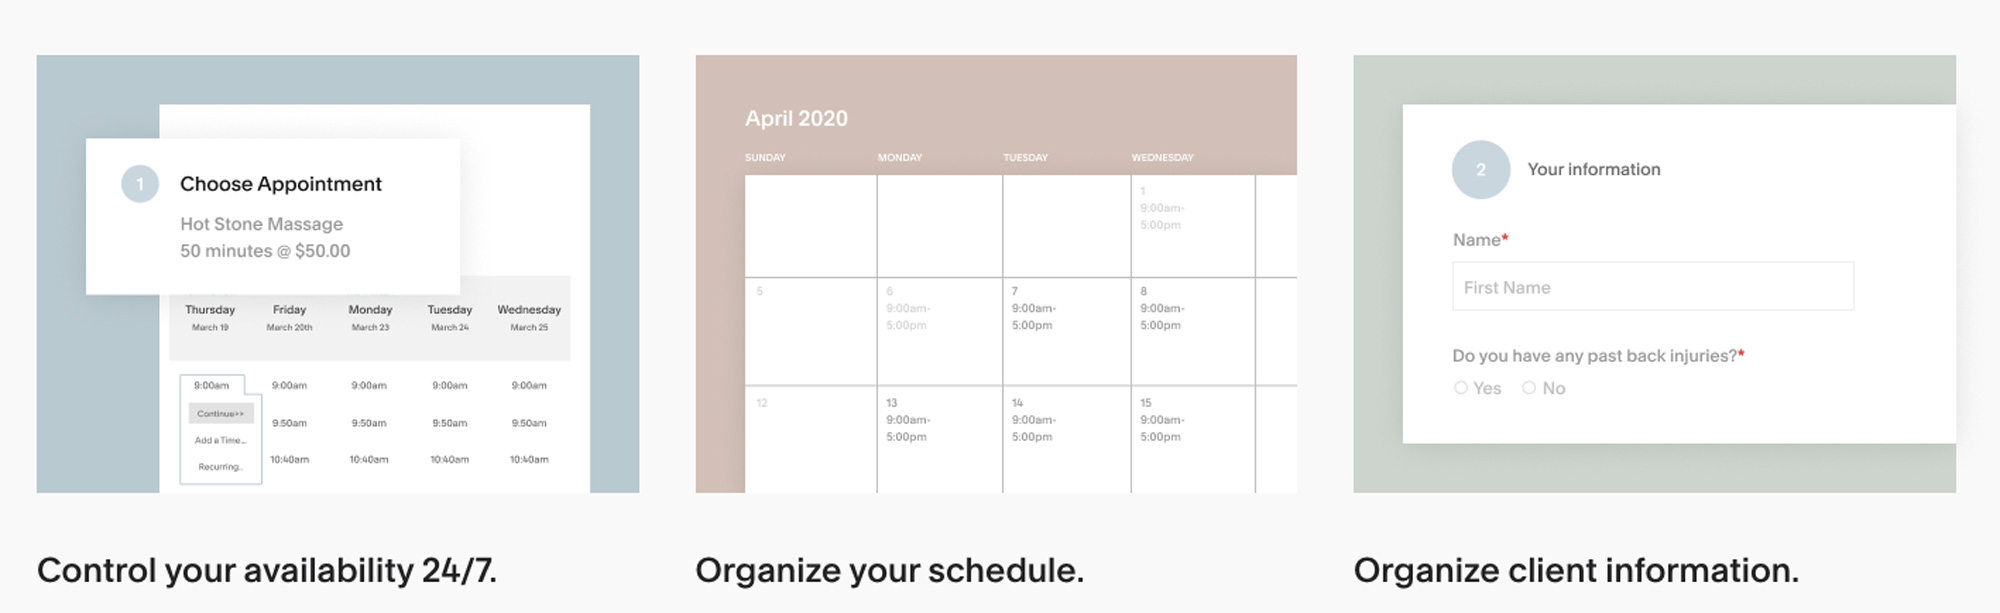 photo management tool Squarespace Scheduling